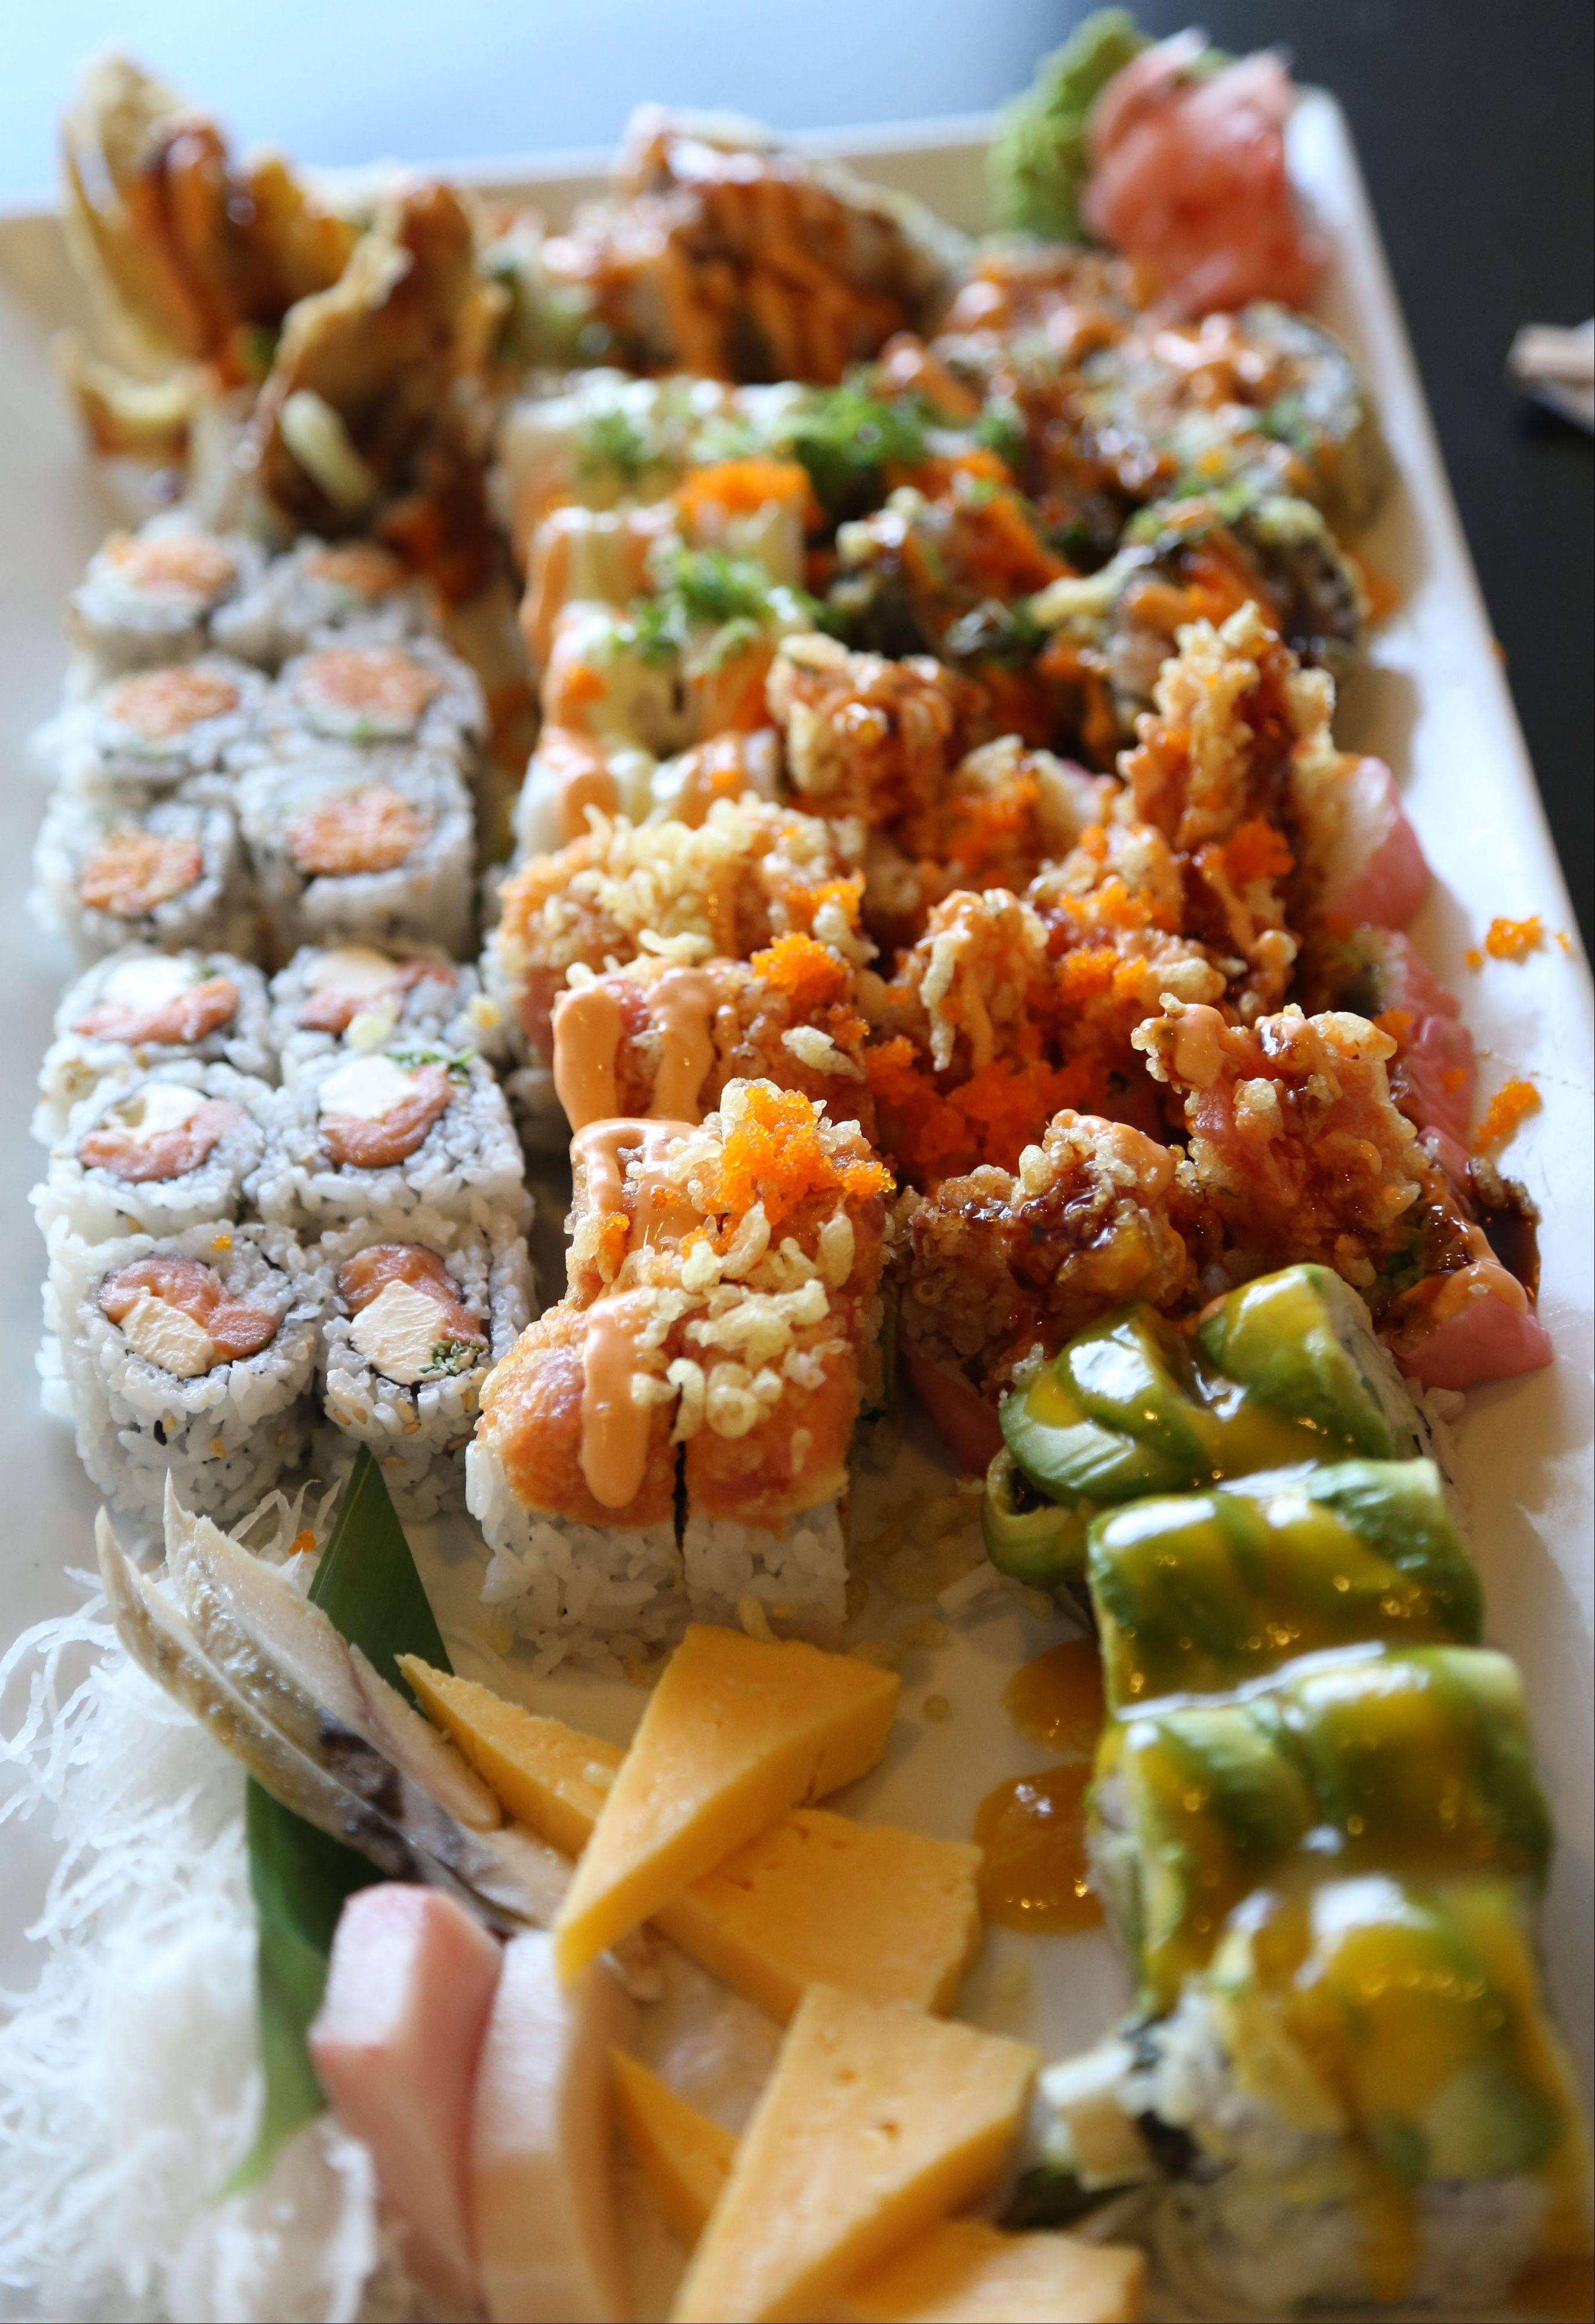 Kawa Japanese Restaurant and Mongolian Grill offers a nice array of sushi.